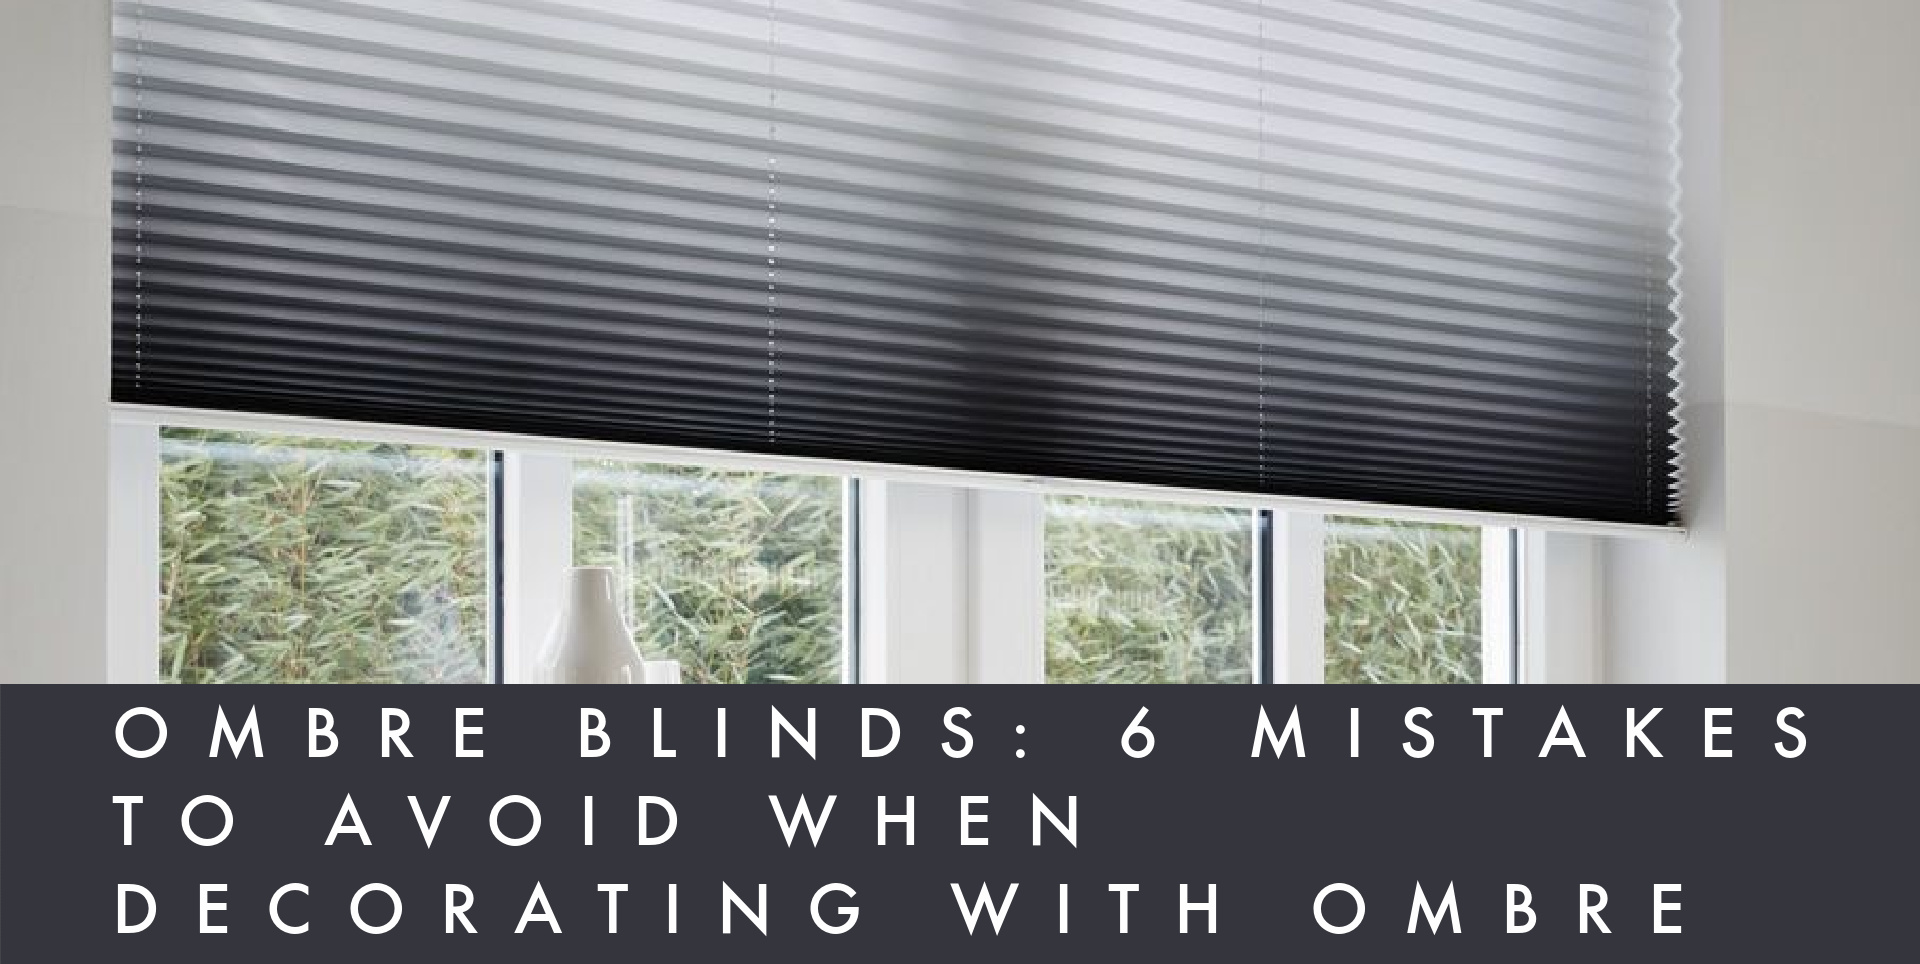 Ombre blinds with grey gradient